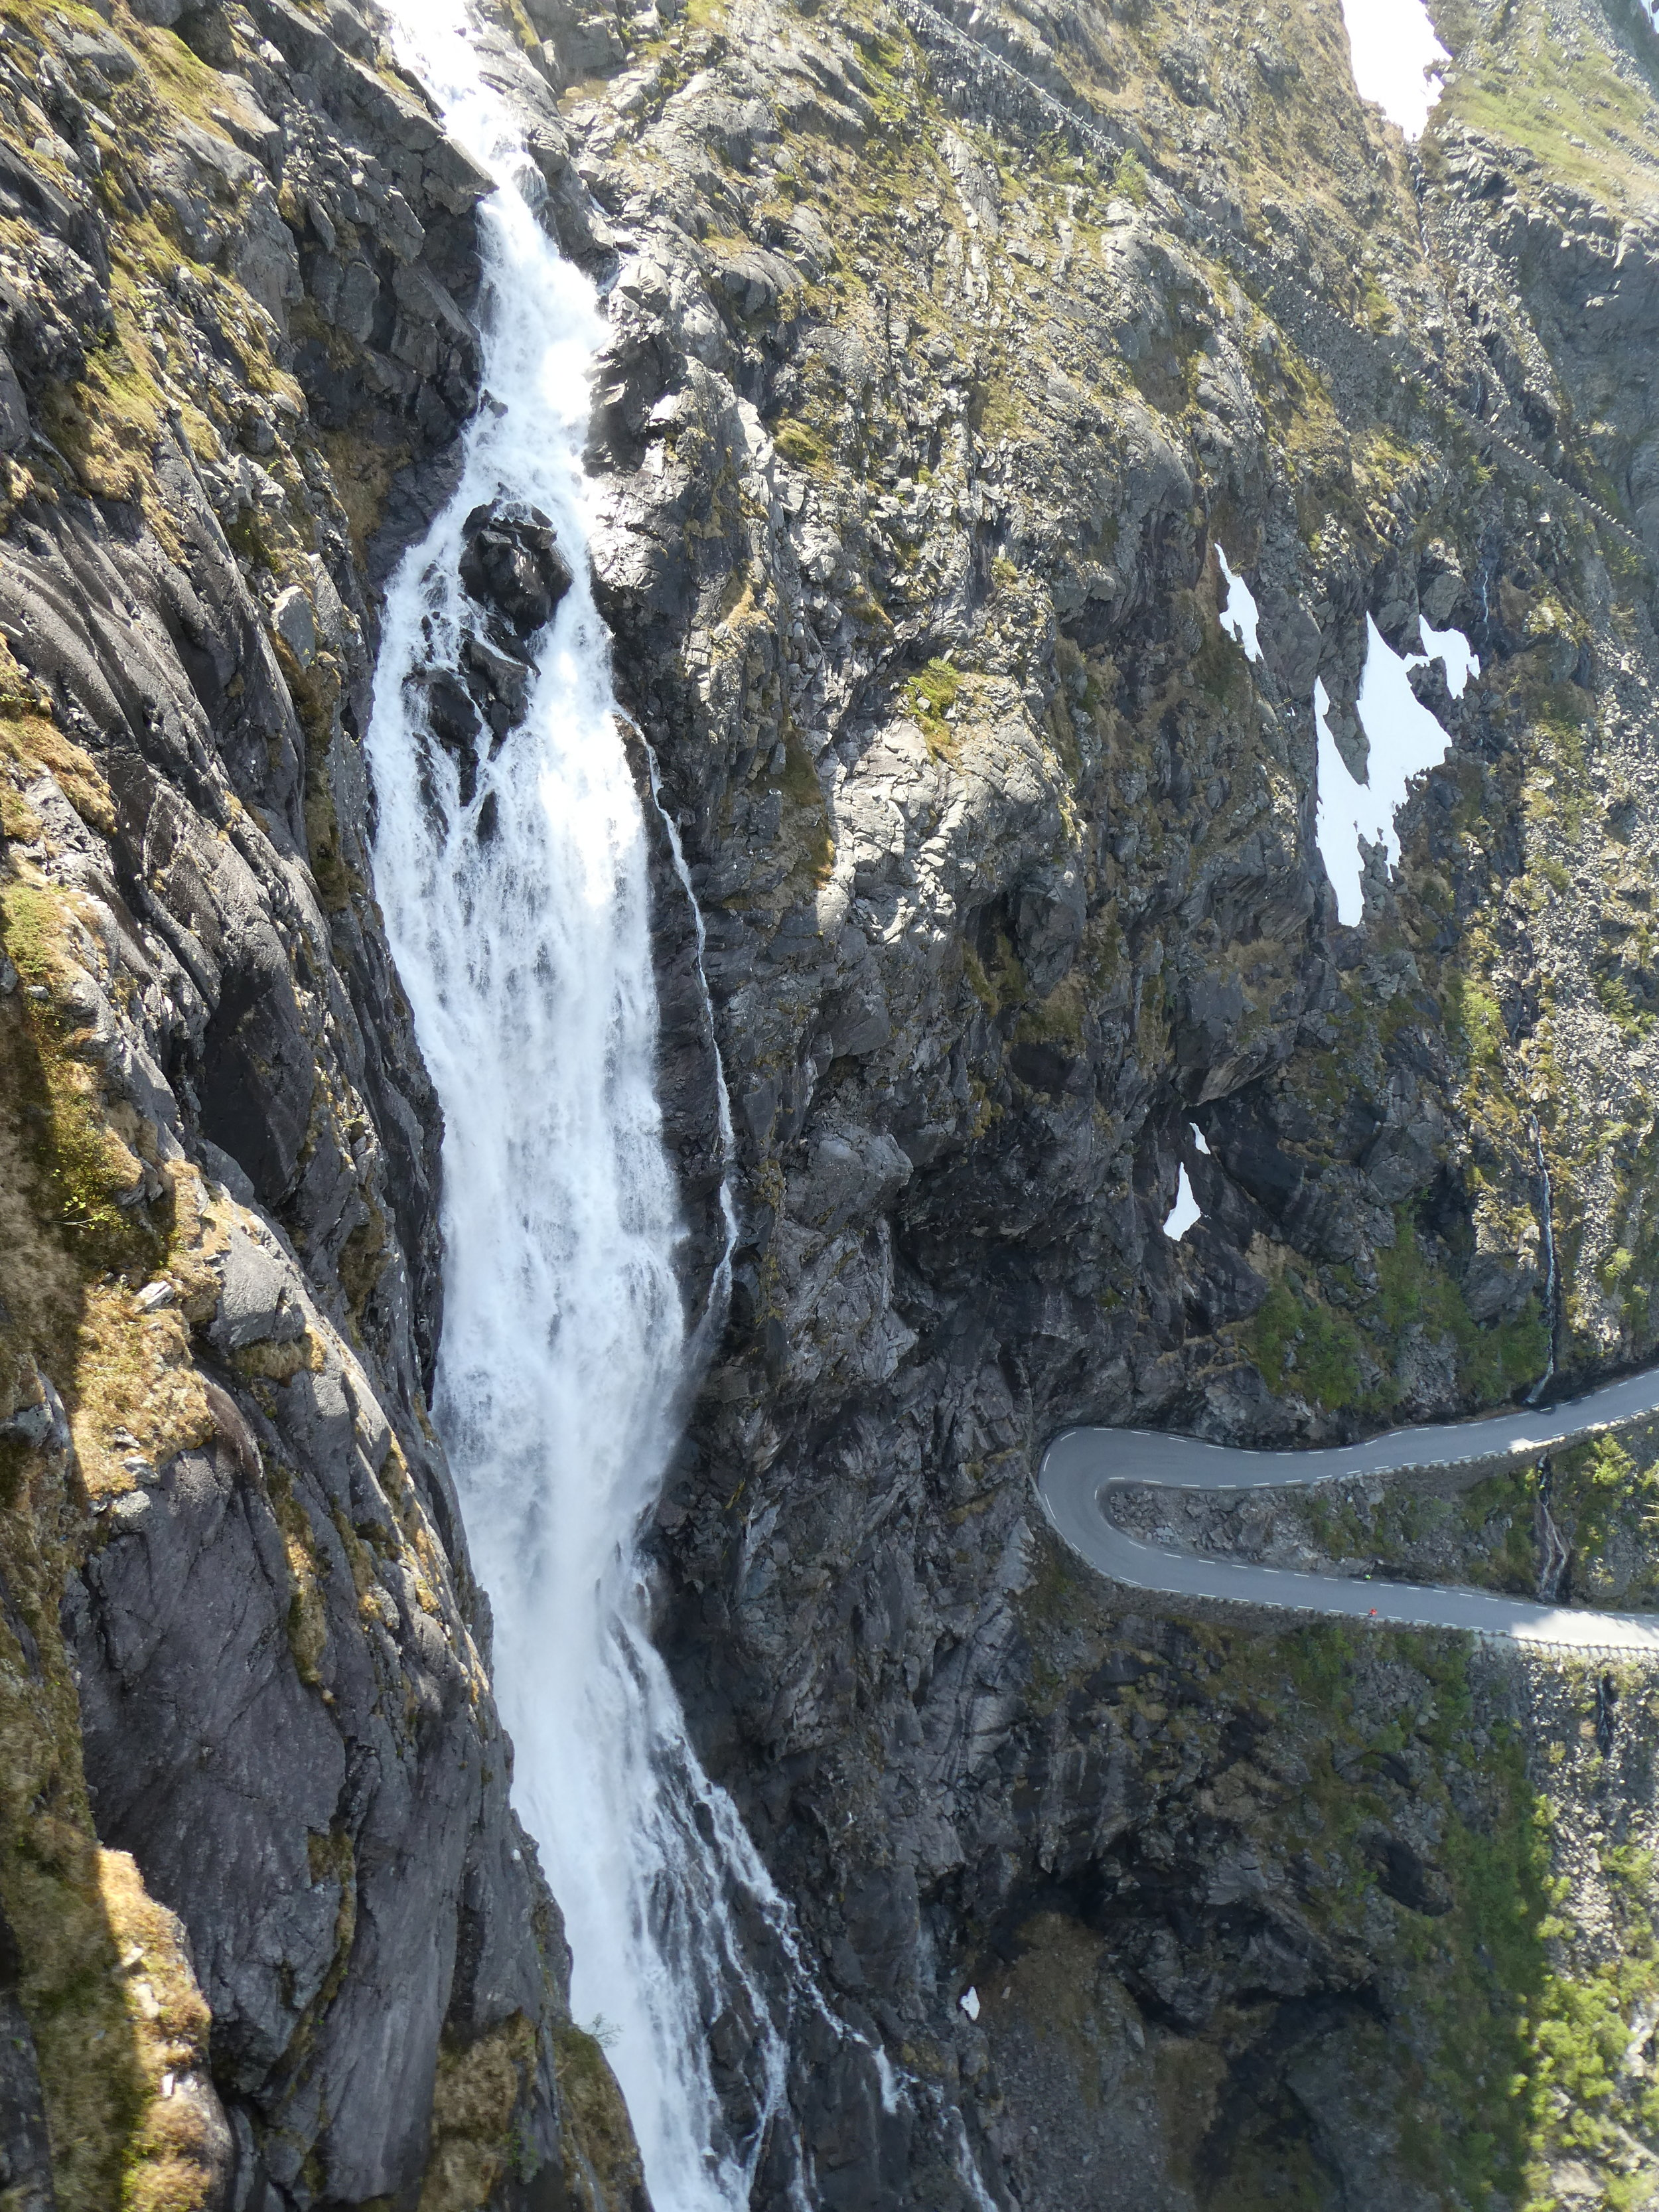 Magnificent waterfalls are everywhere, aided by heavy winter snows and an unusually warm spring.